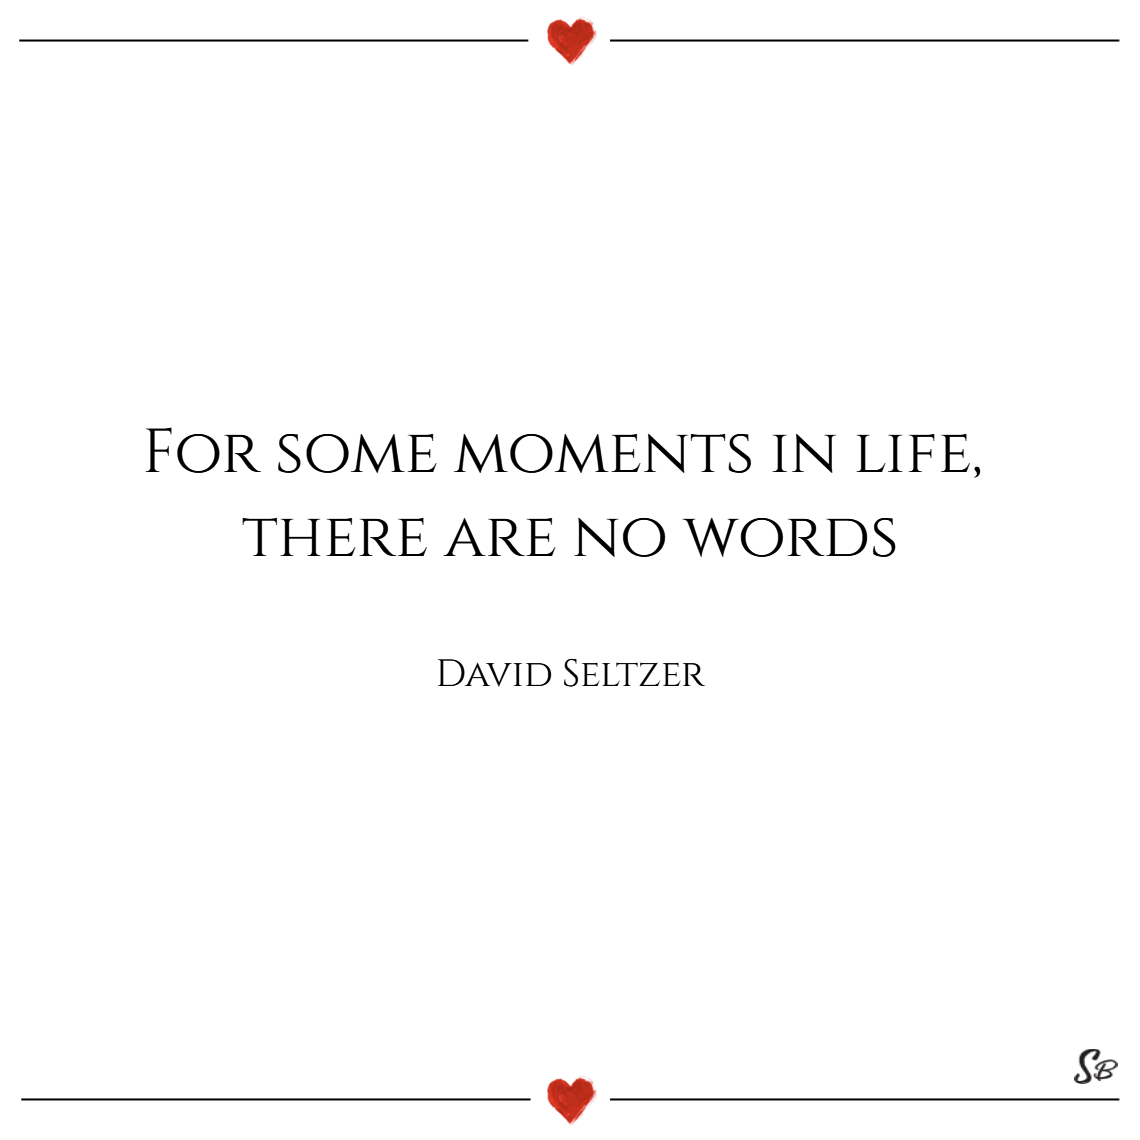 For some moments in life there are no words. – david seltzer